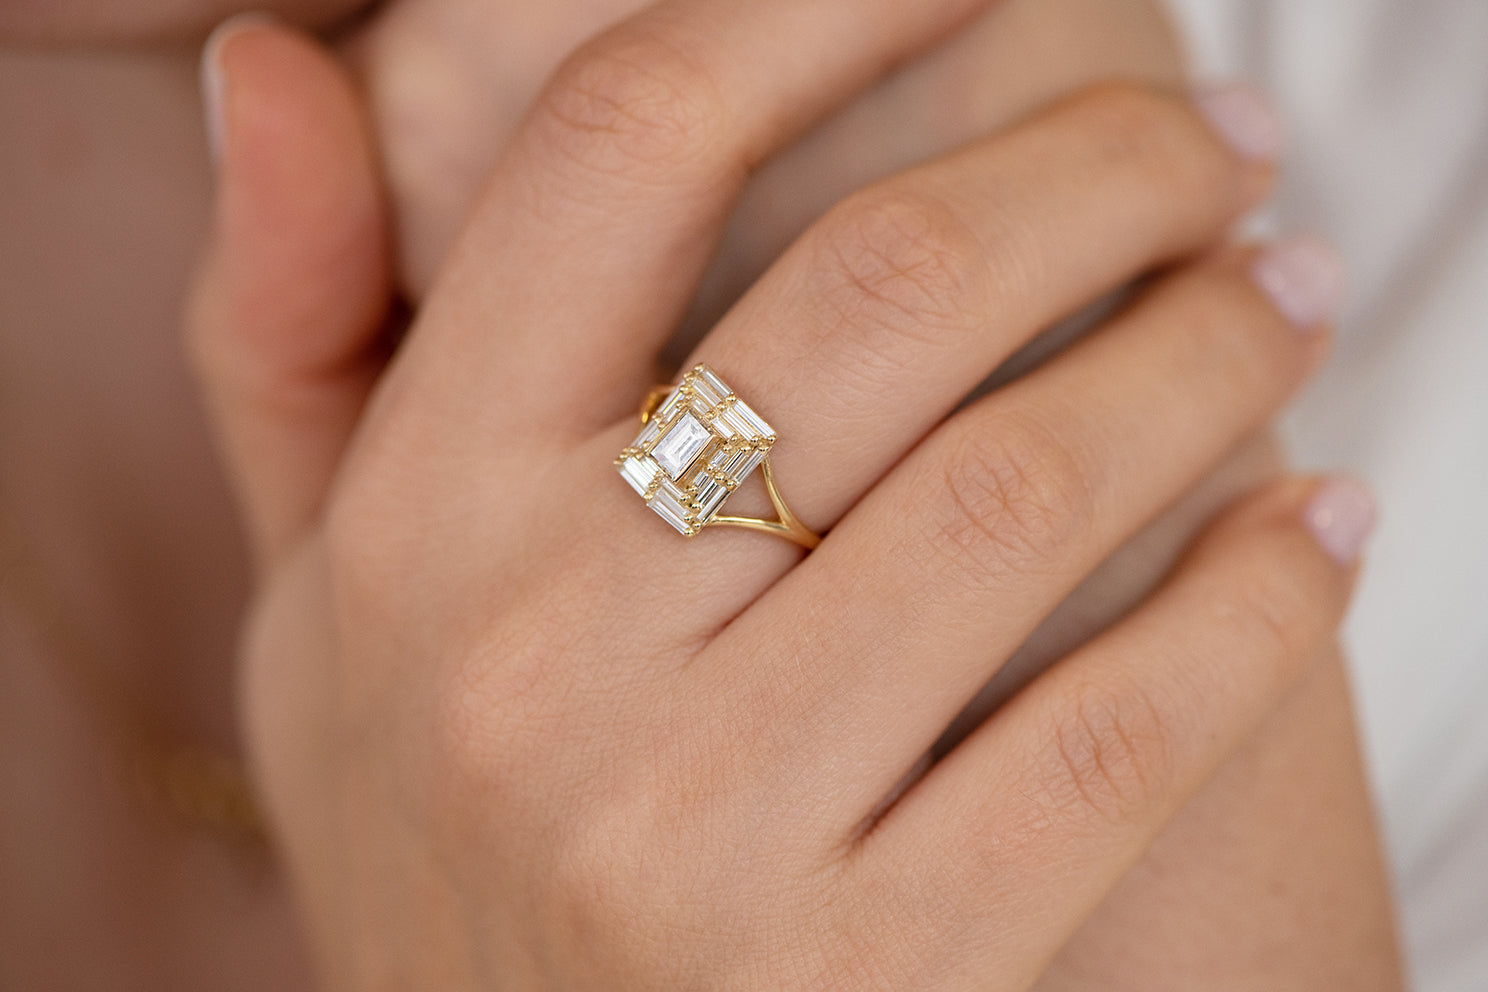 Baguette Cut Engagement Ring - Baguette Temple Ring on Hand Side View